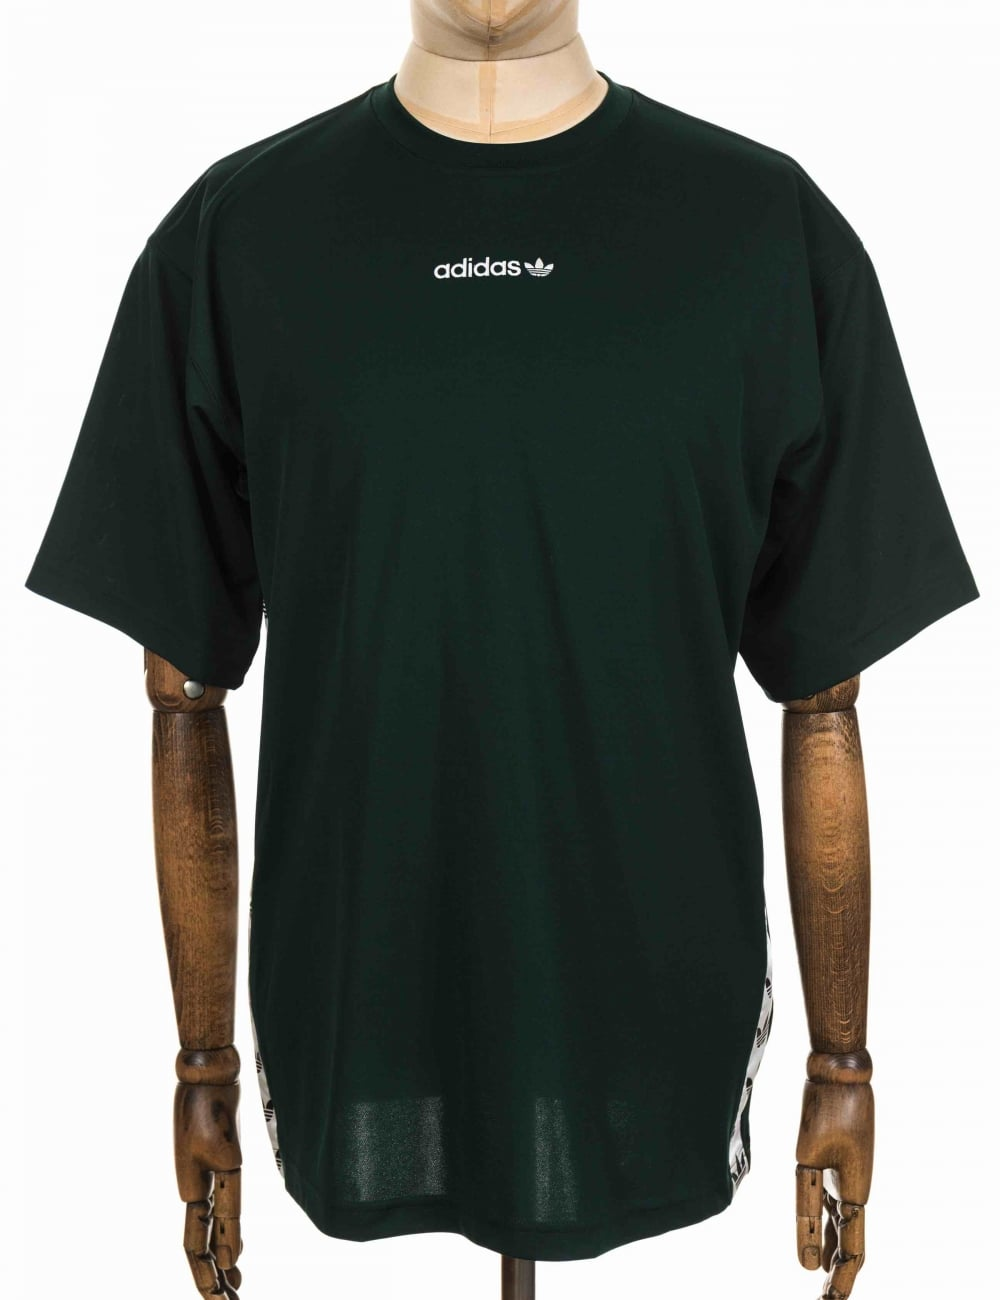 lowest price d0df5 f22c5 Adidas Originals TNT Tape T-shirt - Green Night White